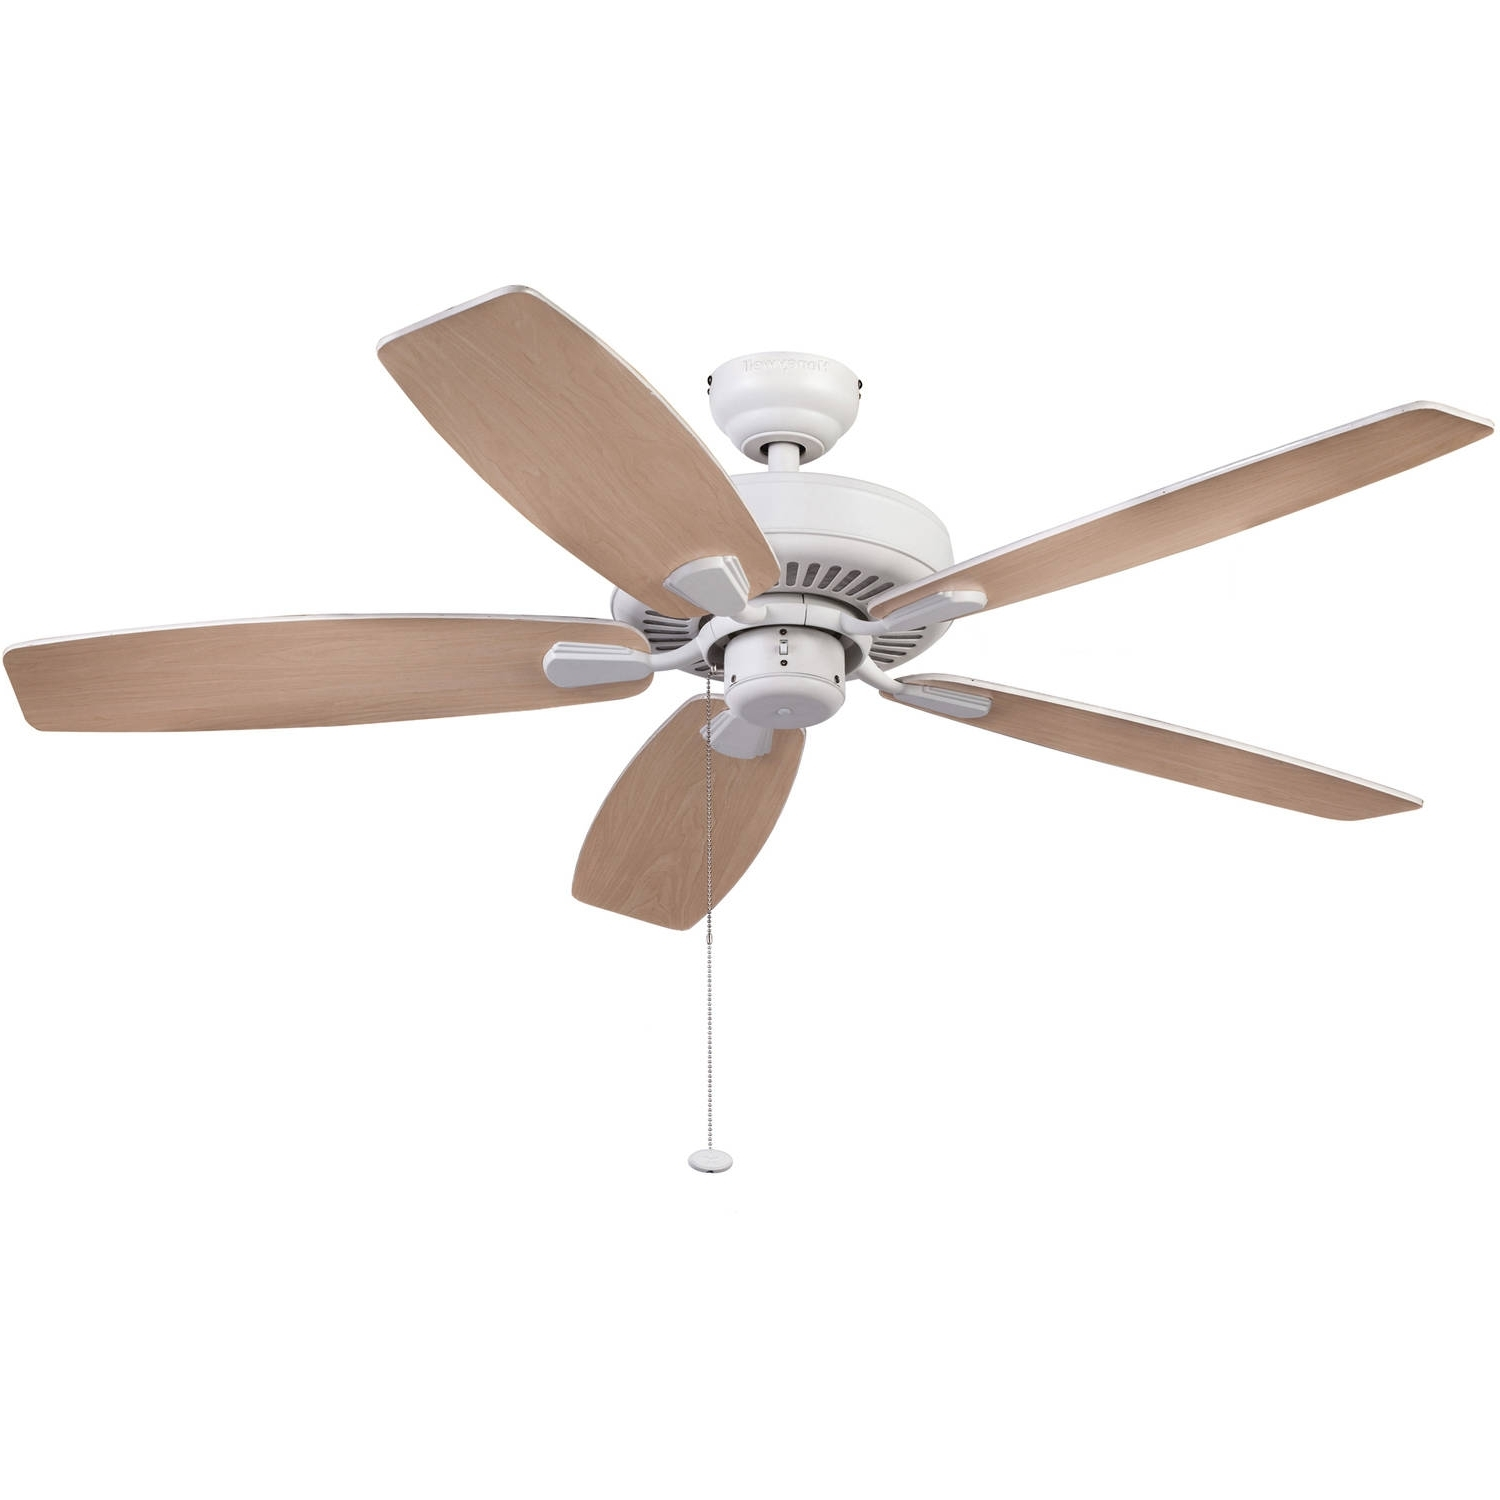 "Trendy Outdoor Ceiling Fans With Lights At Walmart With Regard To 52"" Honeywell Blufton Outdoor Ceiling Fan, White – Walmart (View 18 of 20)"